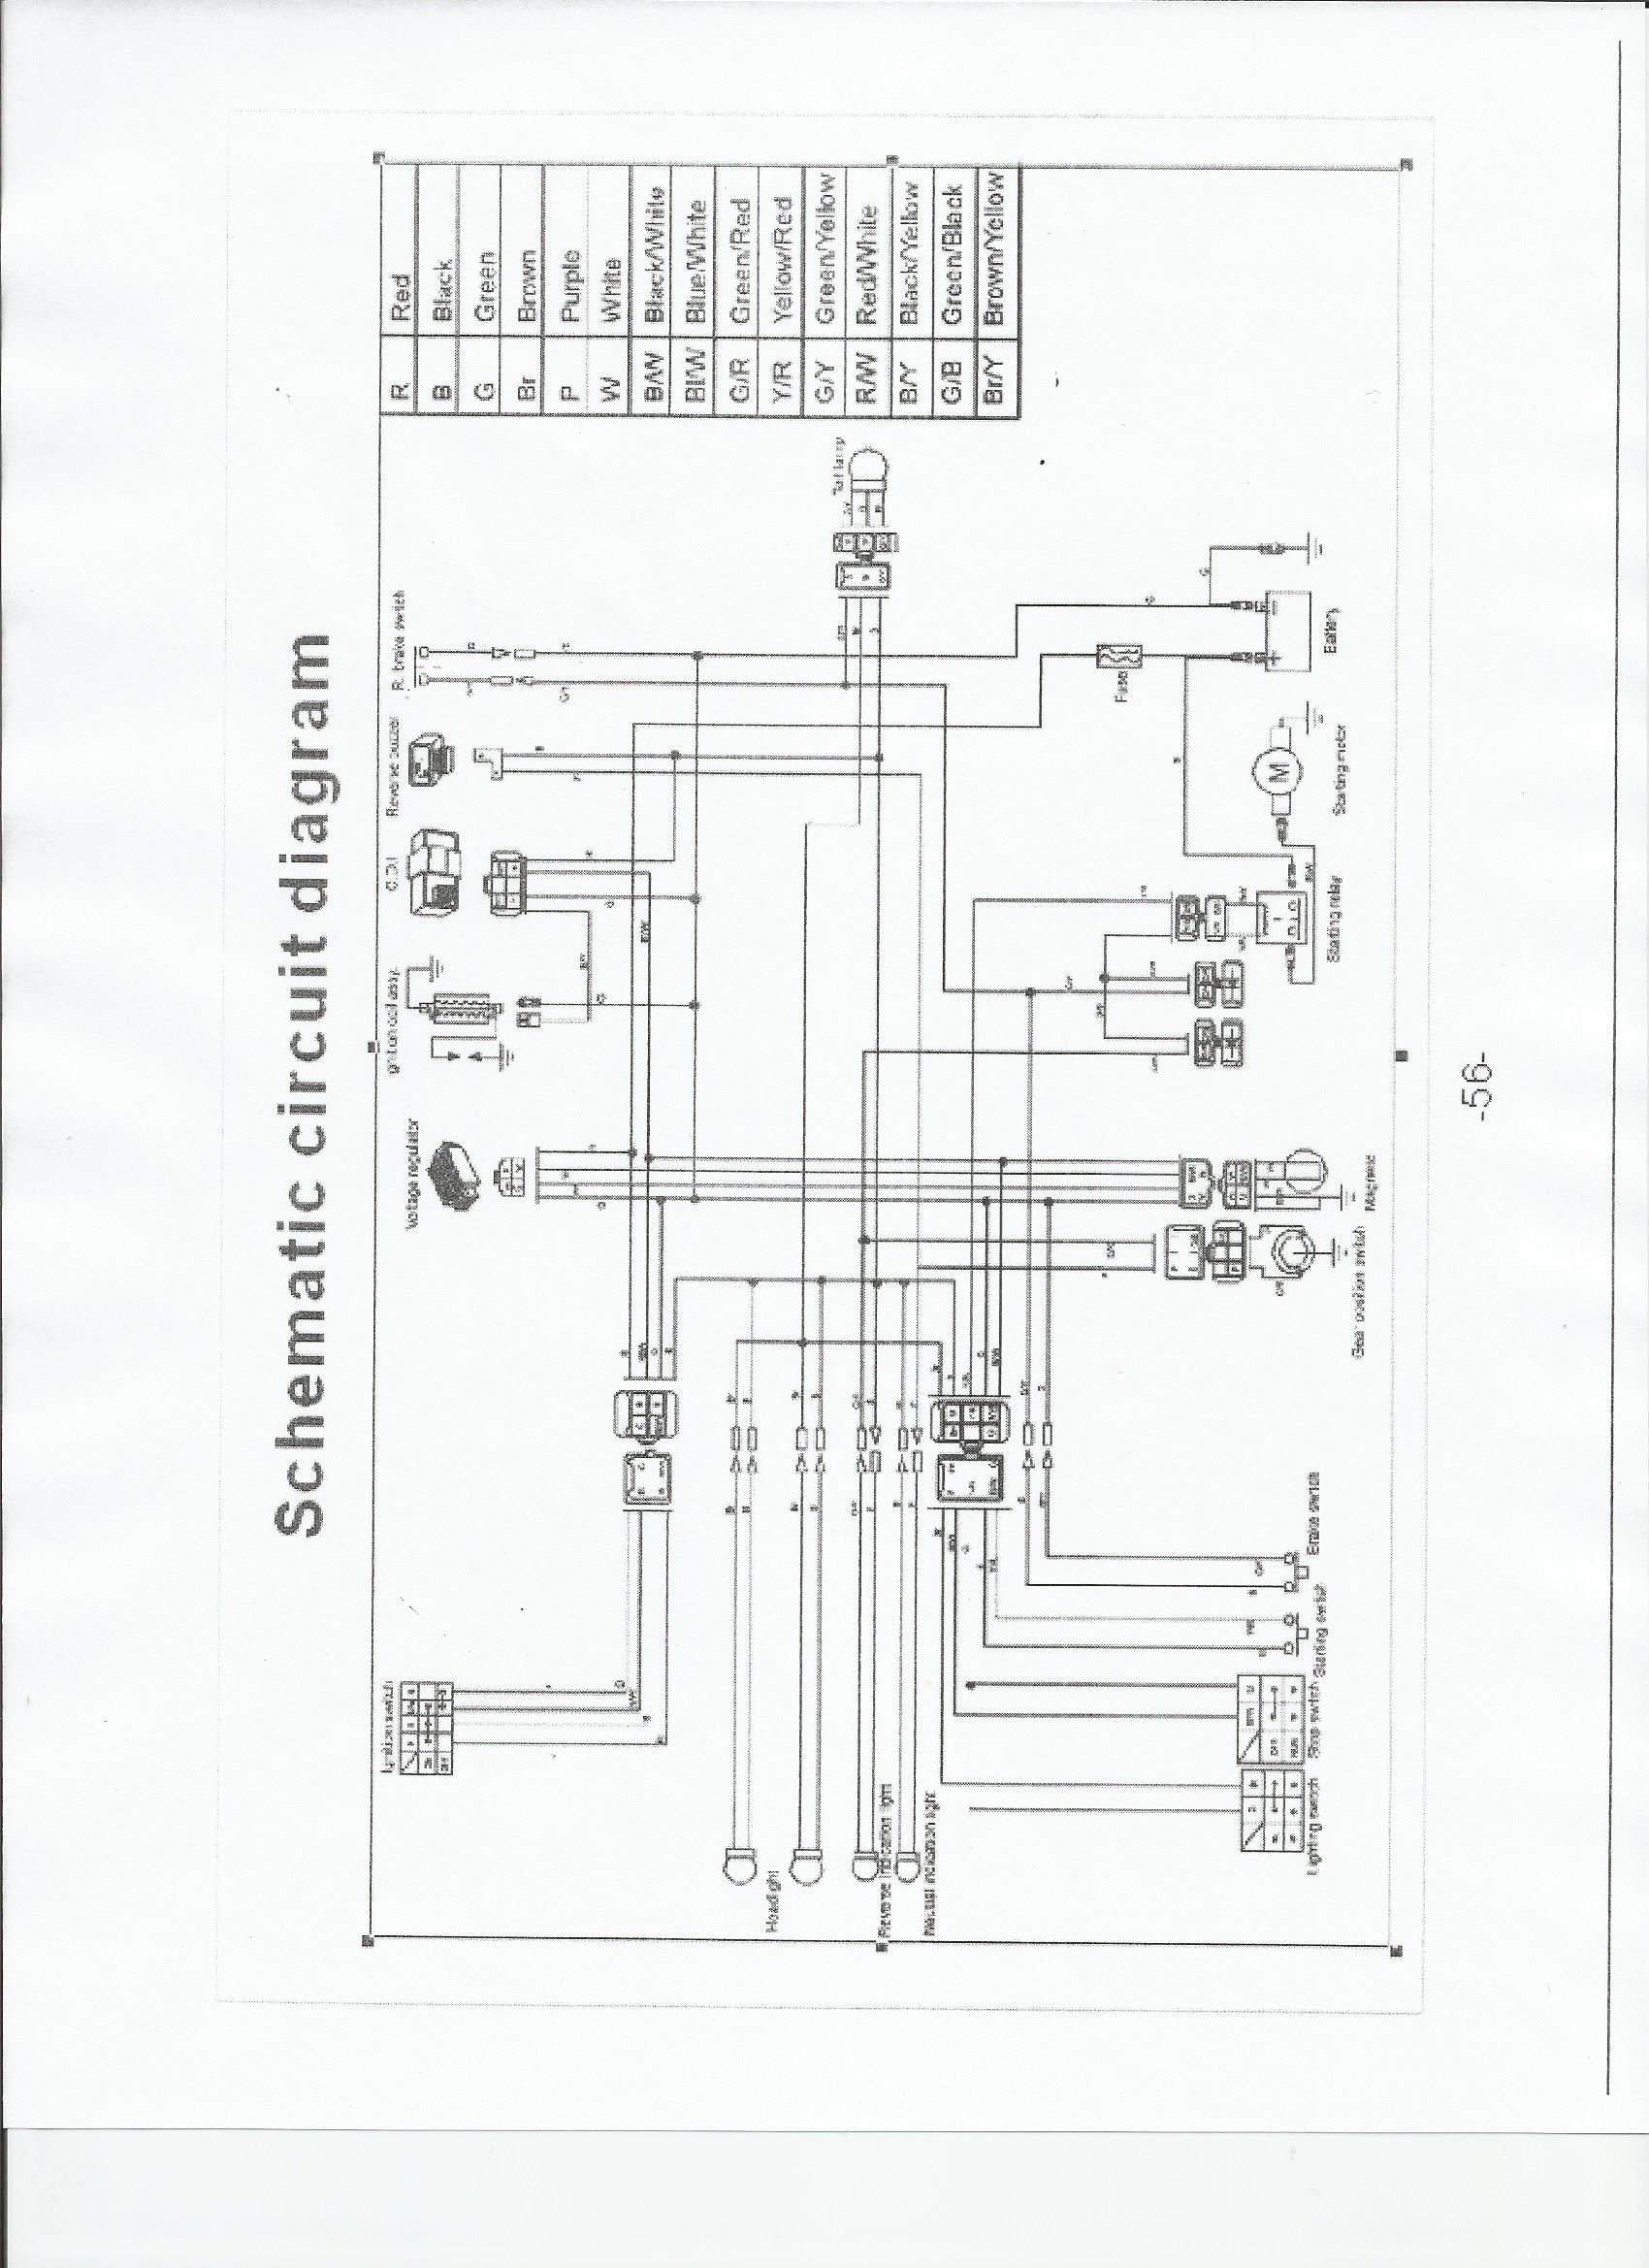 China Motorcycle Wiring Diagrams China Circuit Diagrams